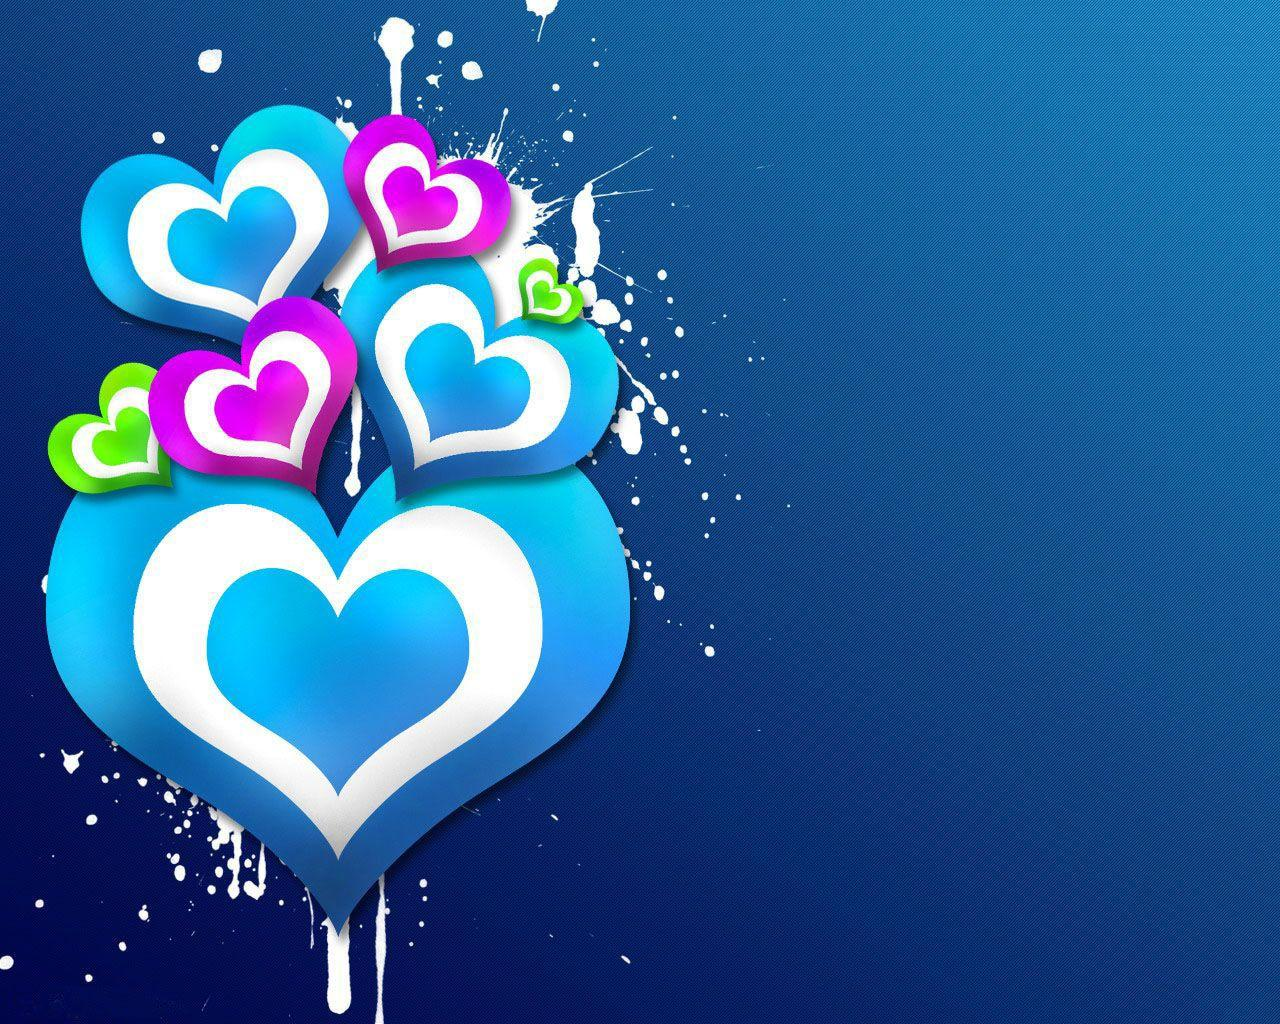 Free 3d Love Images Hd Background Wallpapers Download